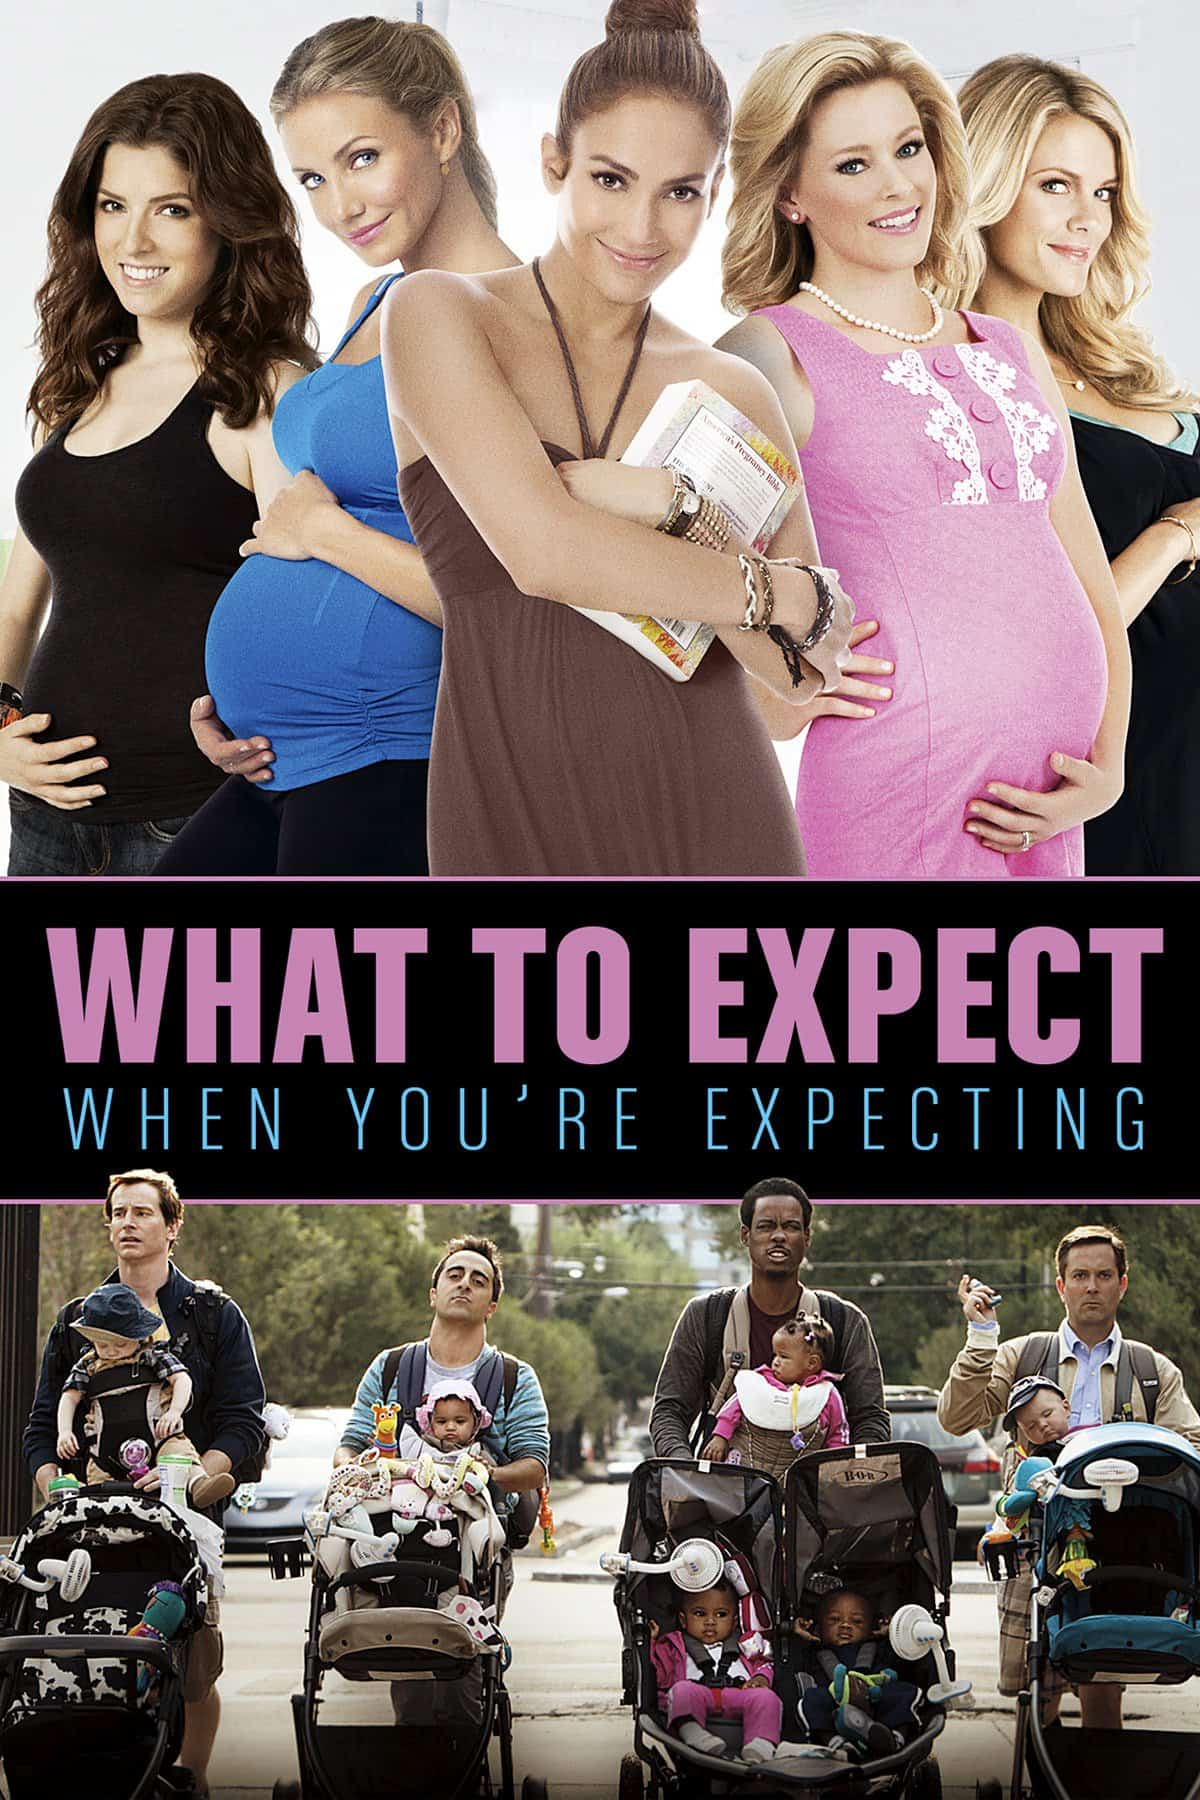 What to Expect When You're Expecting, 2012